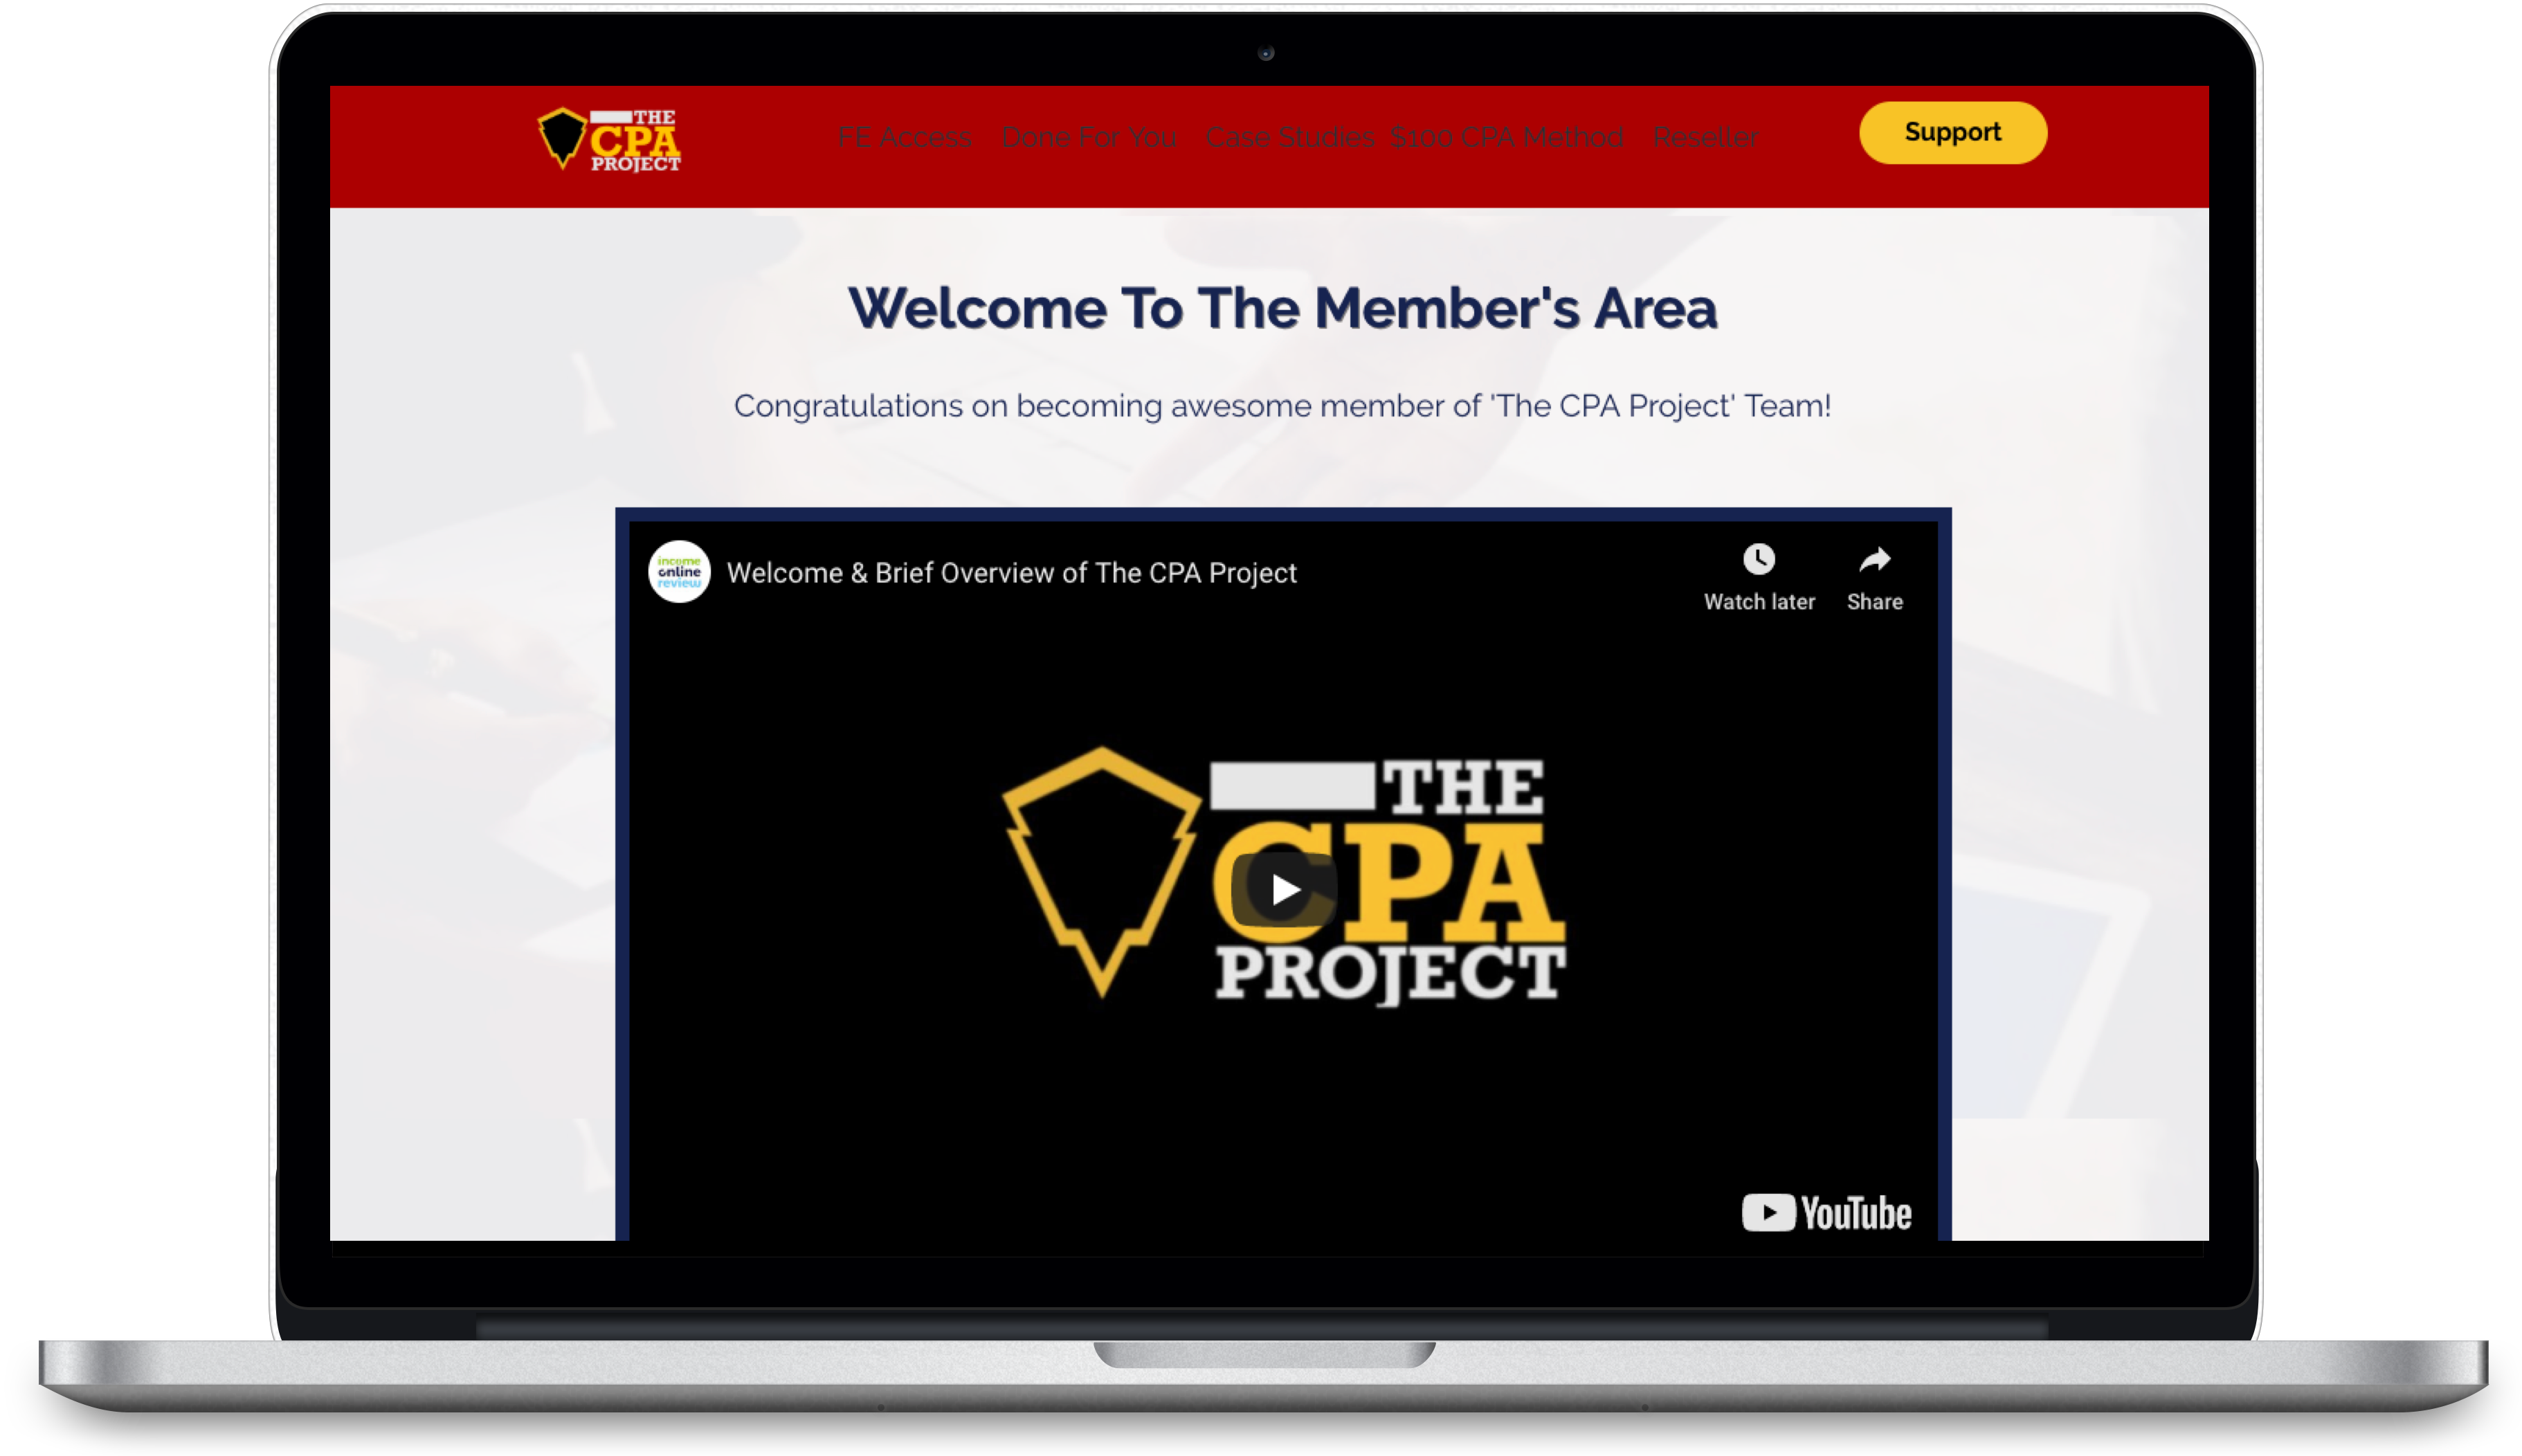 [THE CPA PROJECT] 4 Ways to Build a Passive Income With CPA Affiliate Marketing 3